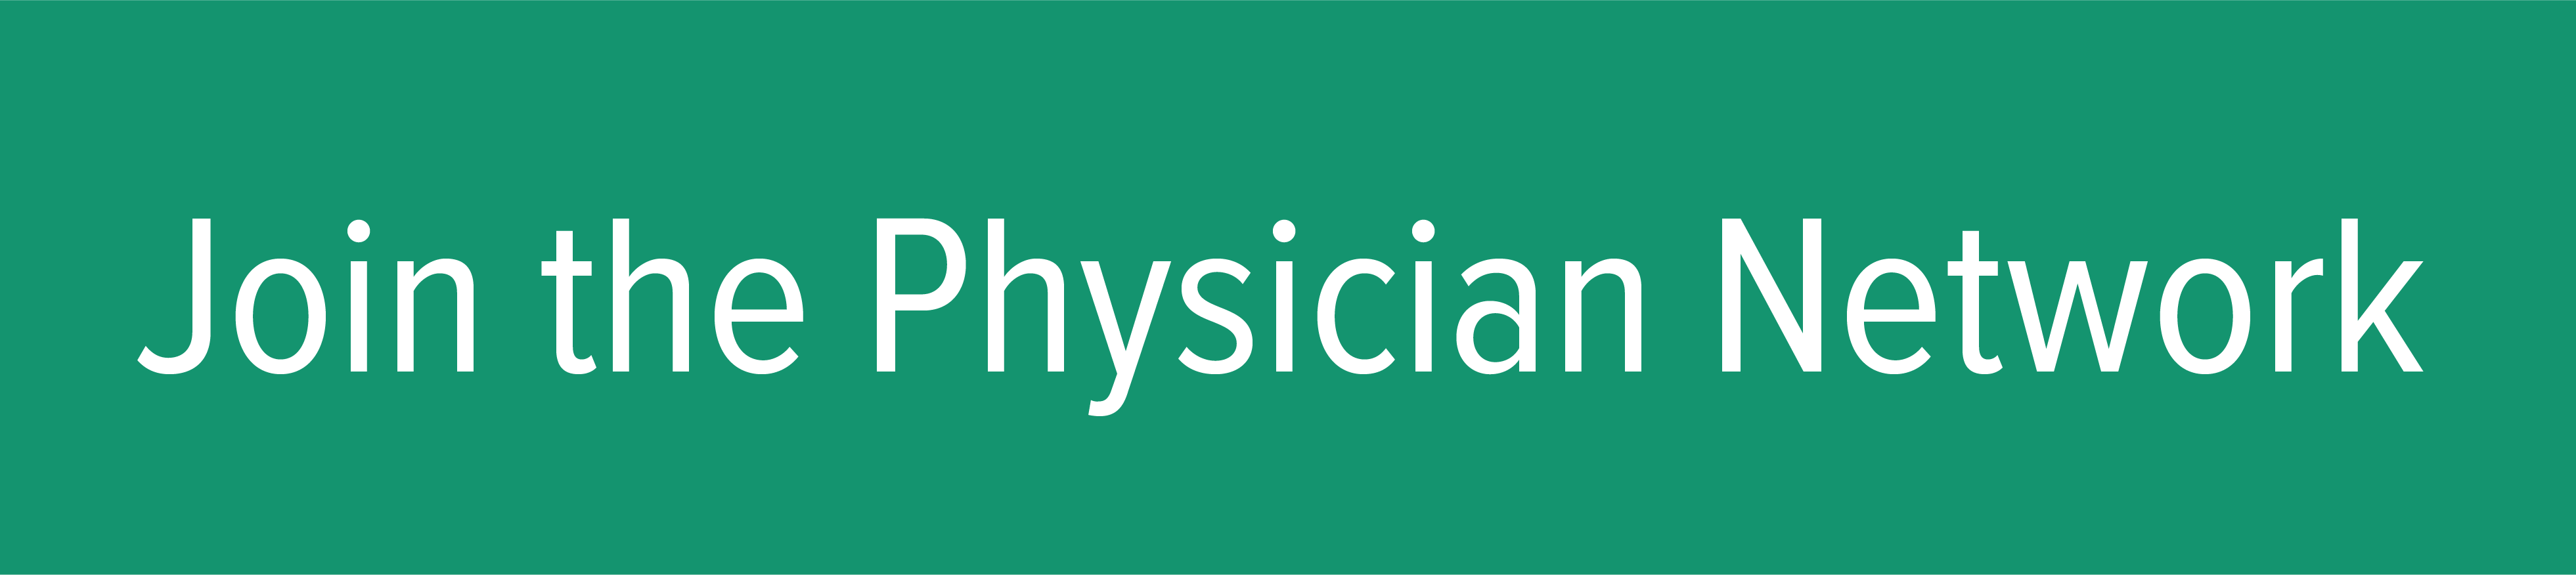 Join the Physician Network